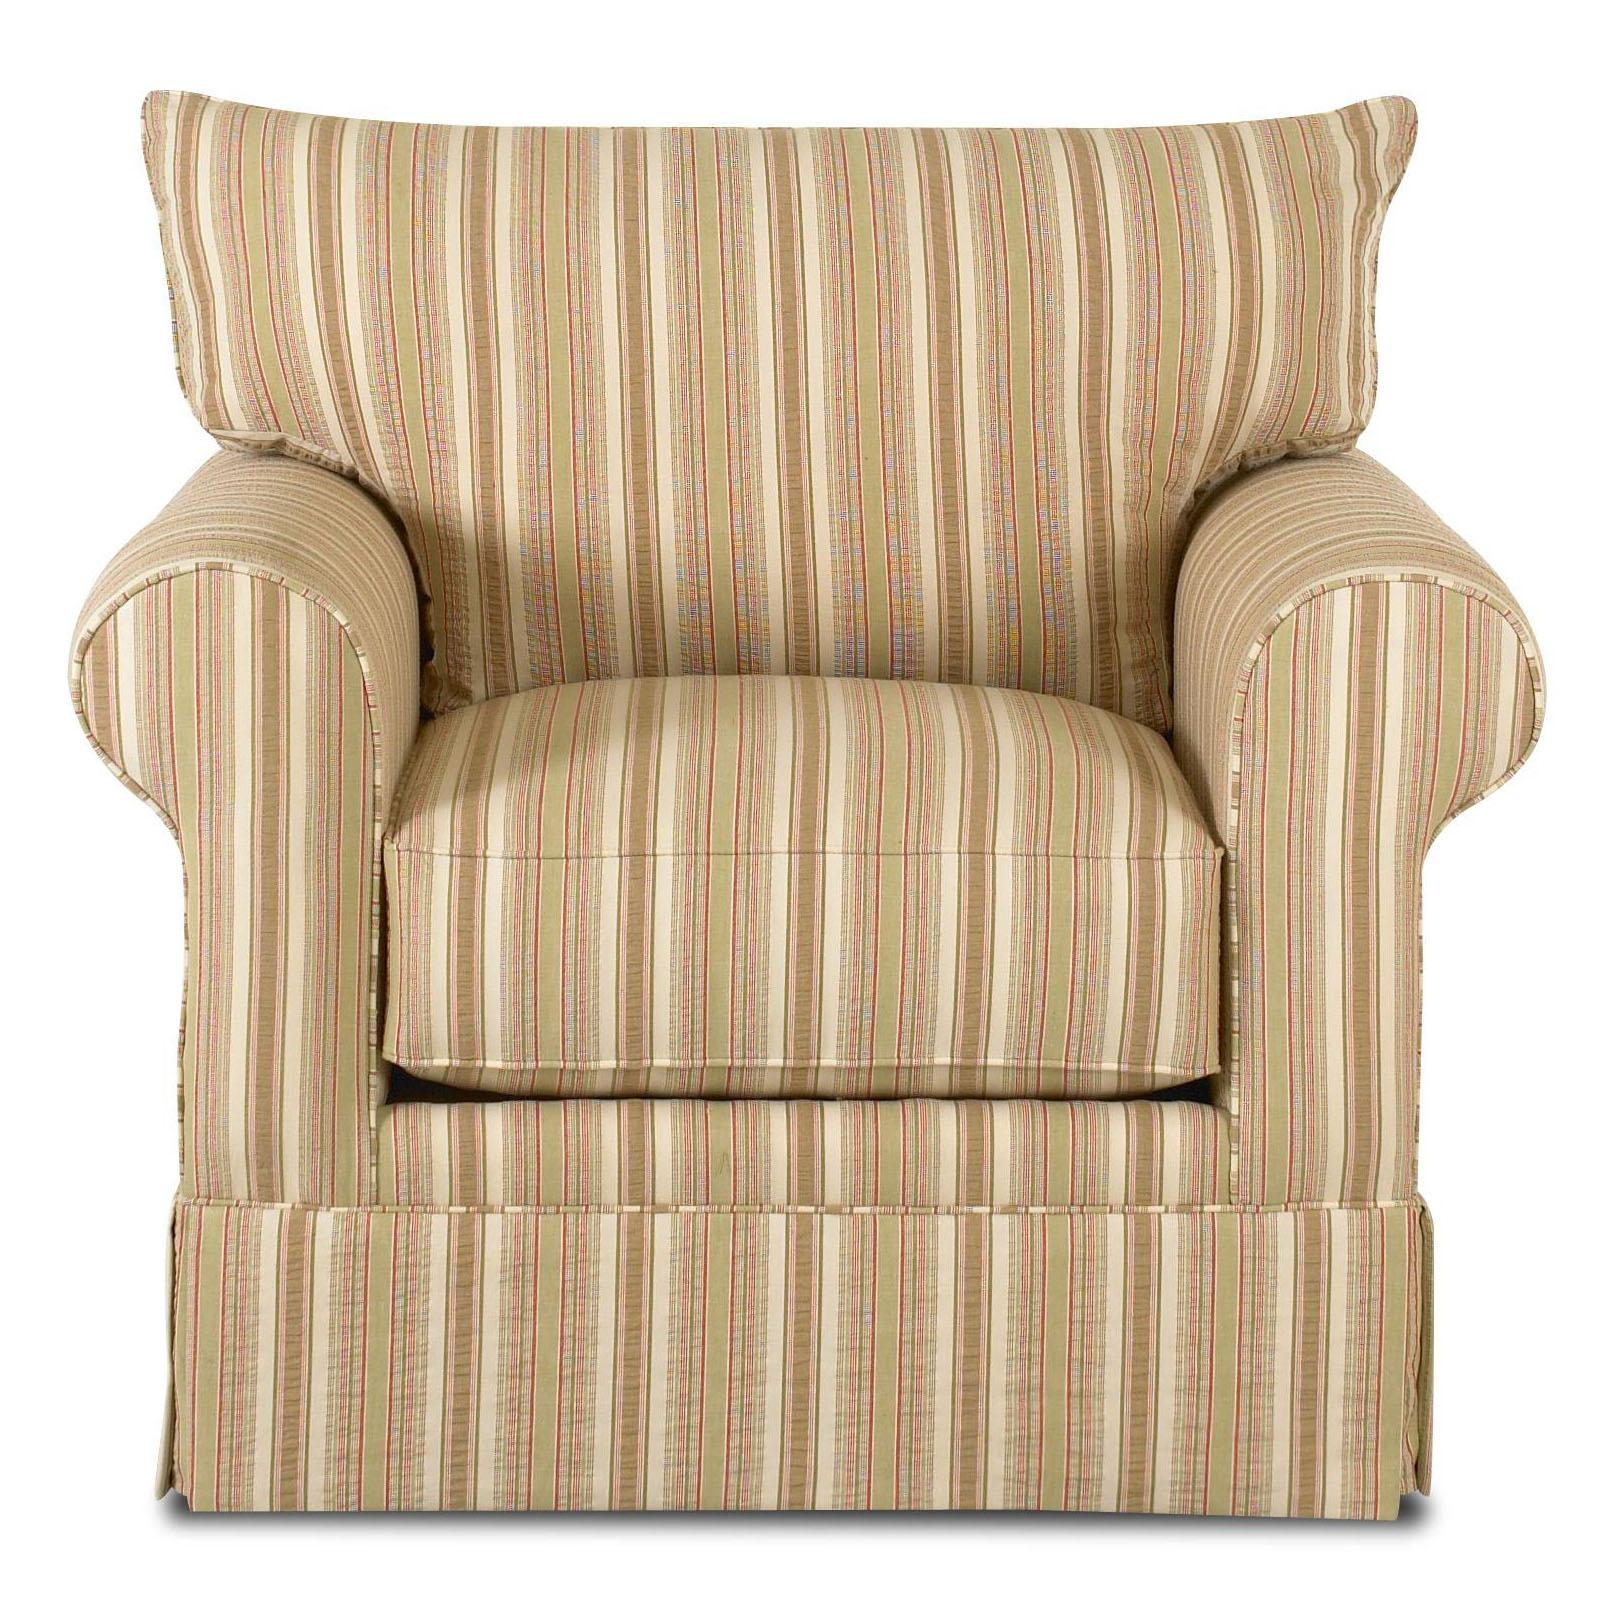 Klaussner Grove Park Upholstered Chair - Item Number: K7000C